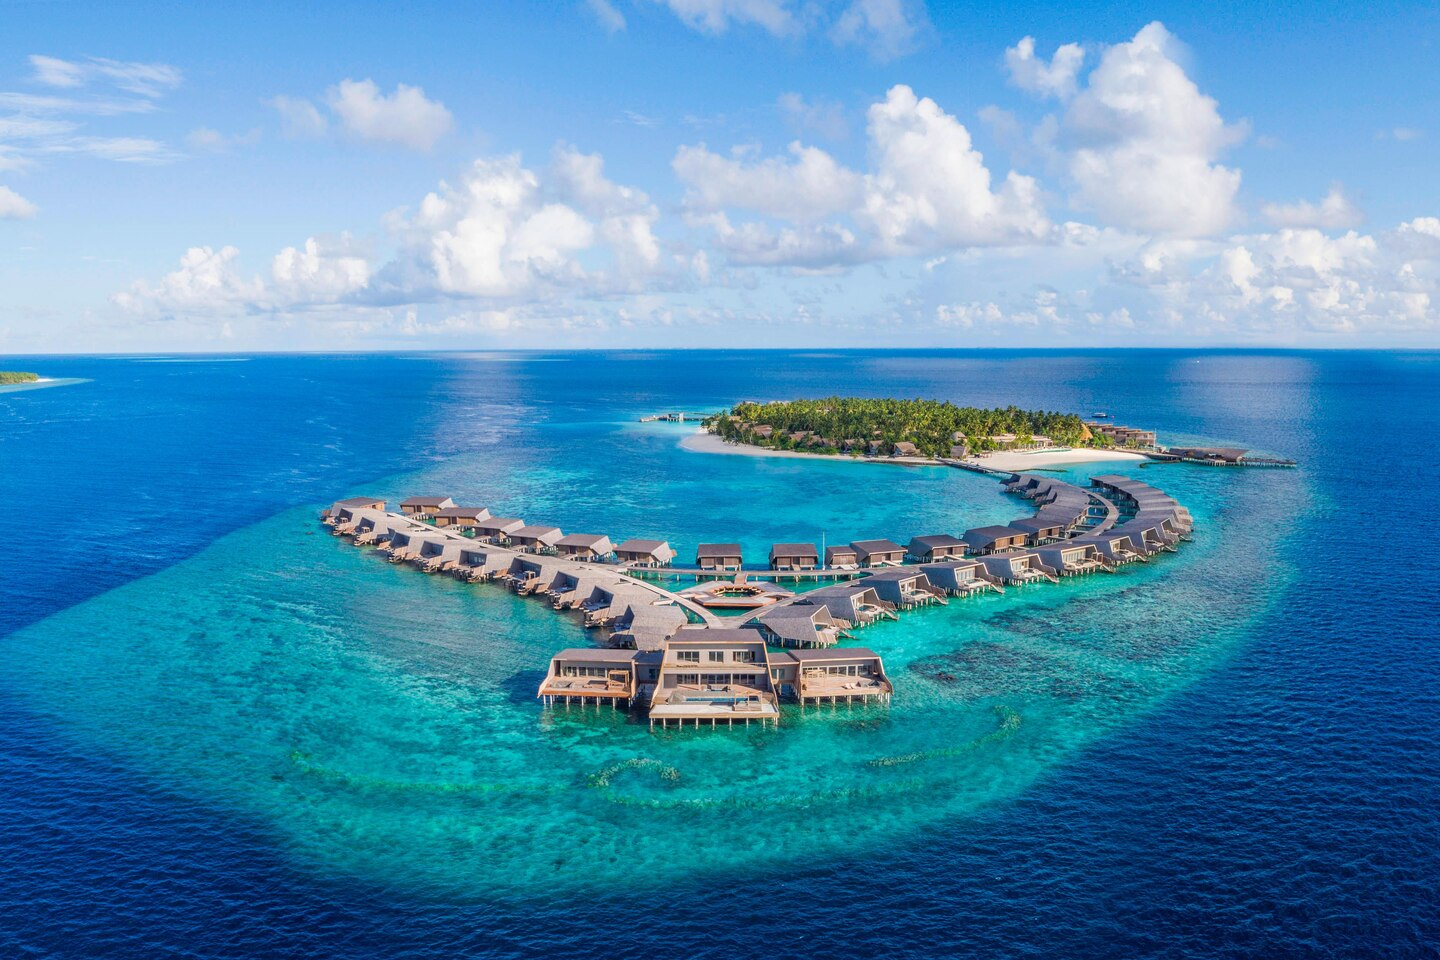 100,000 points is enough for a night at the luxurious St. Regis Maldives Vommuli Resort, even at peak pricing!